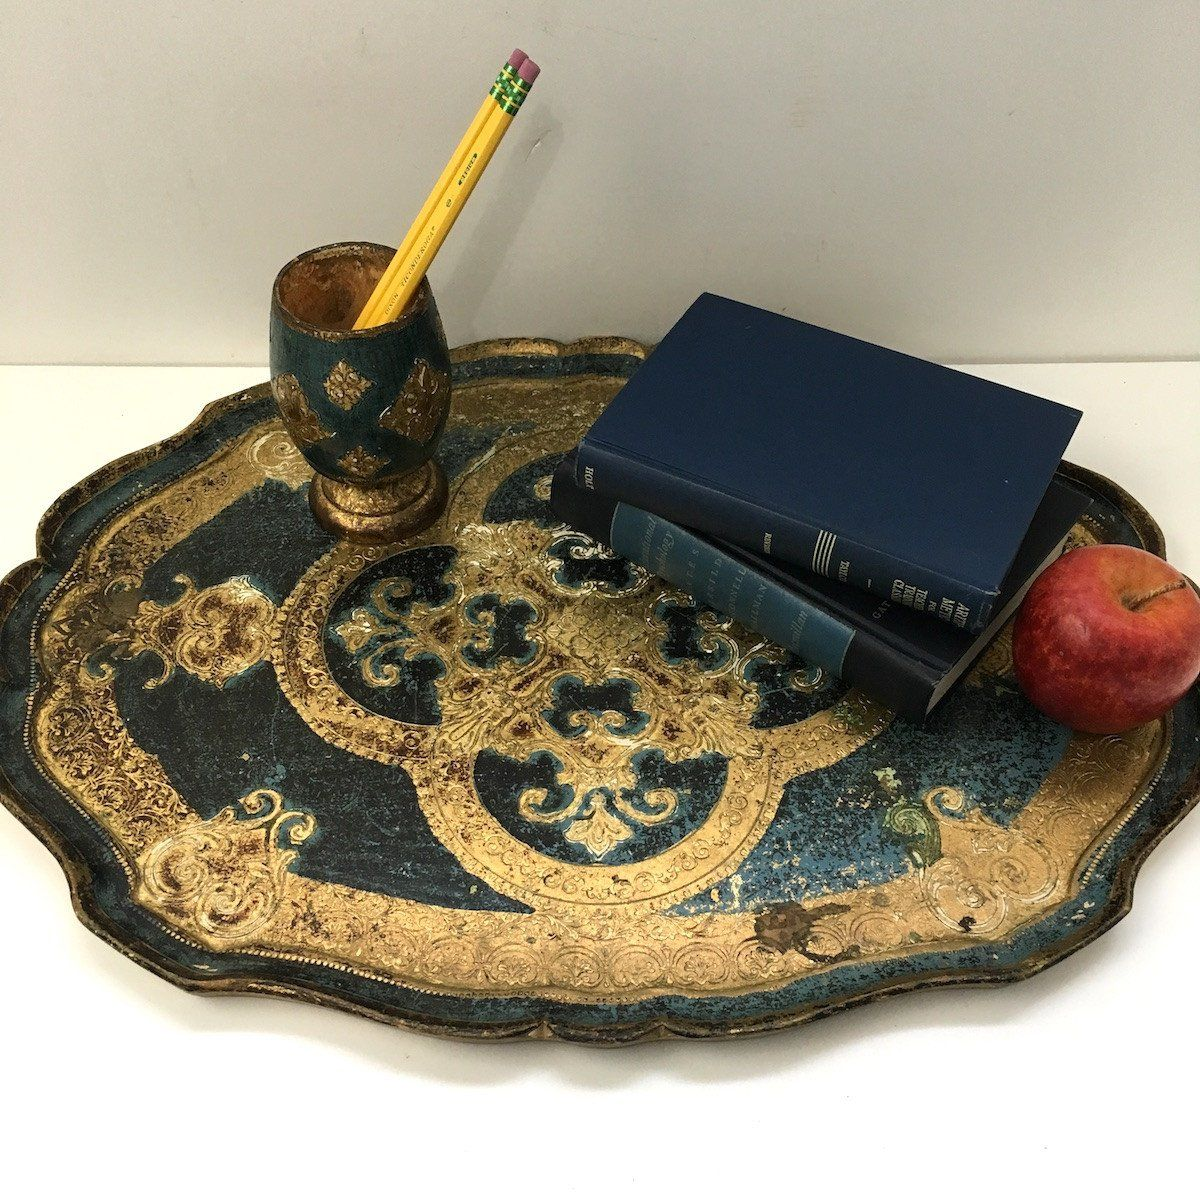 Florentine desk set - blue and gold gesso on wood painted tray and pencil holder - 1960s decor